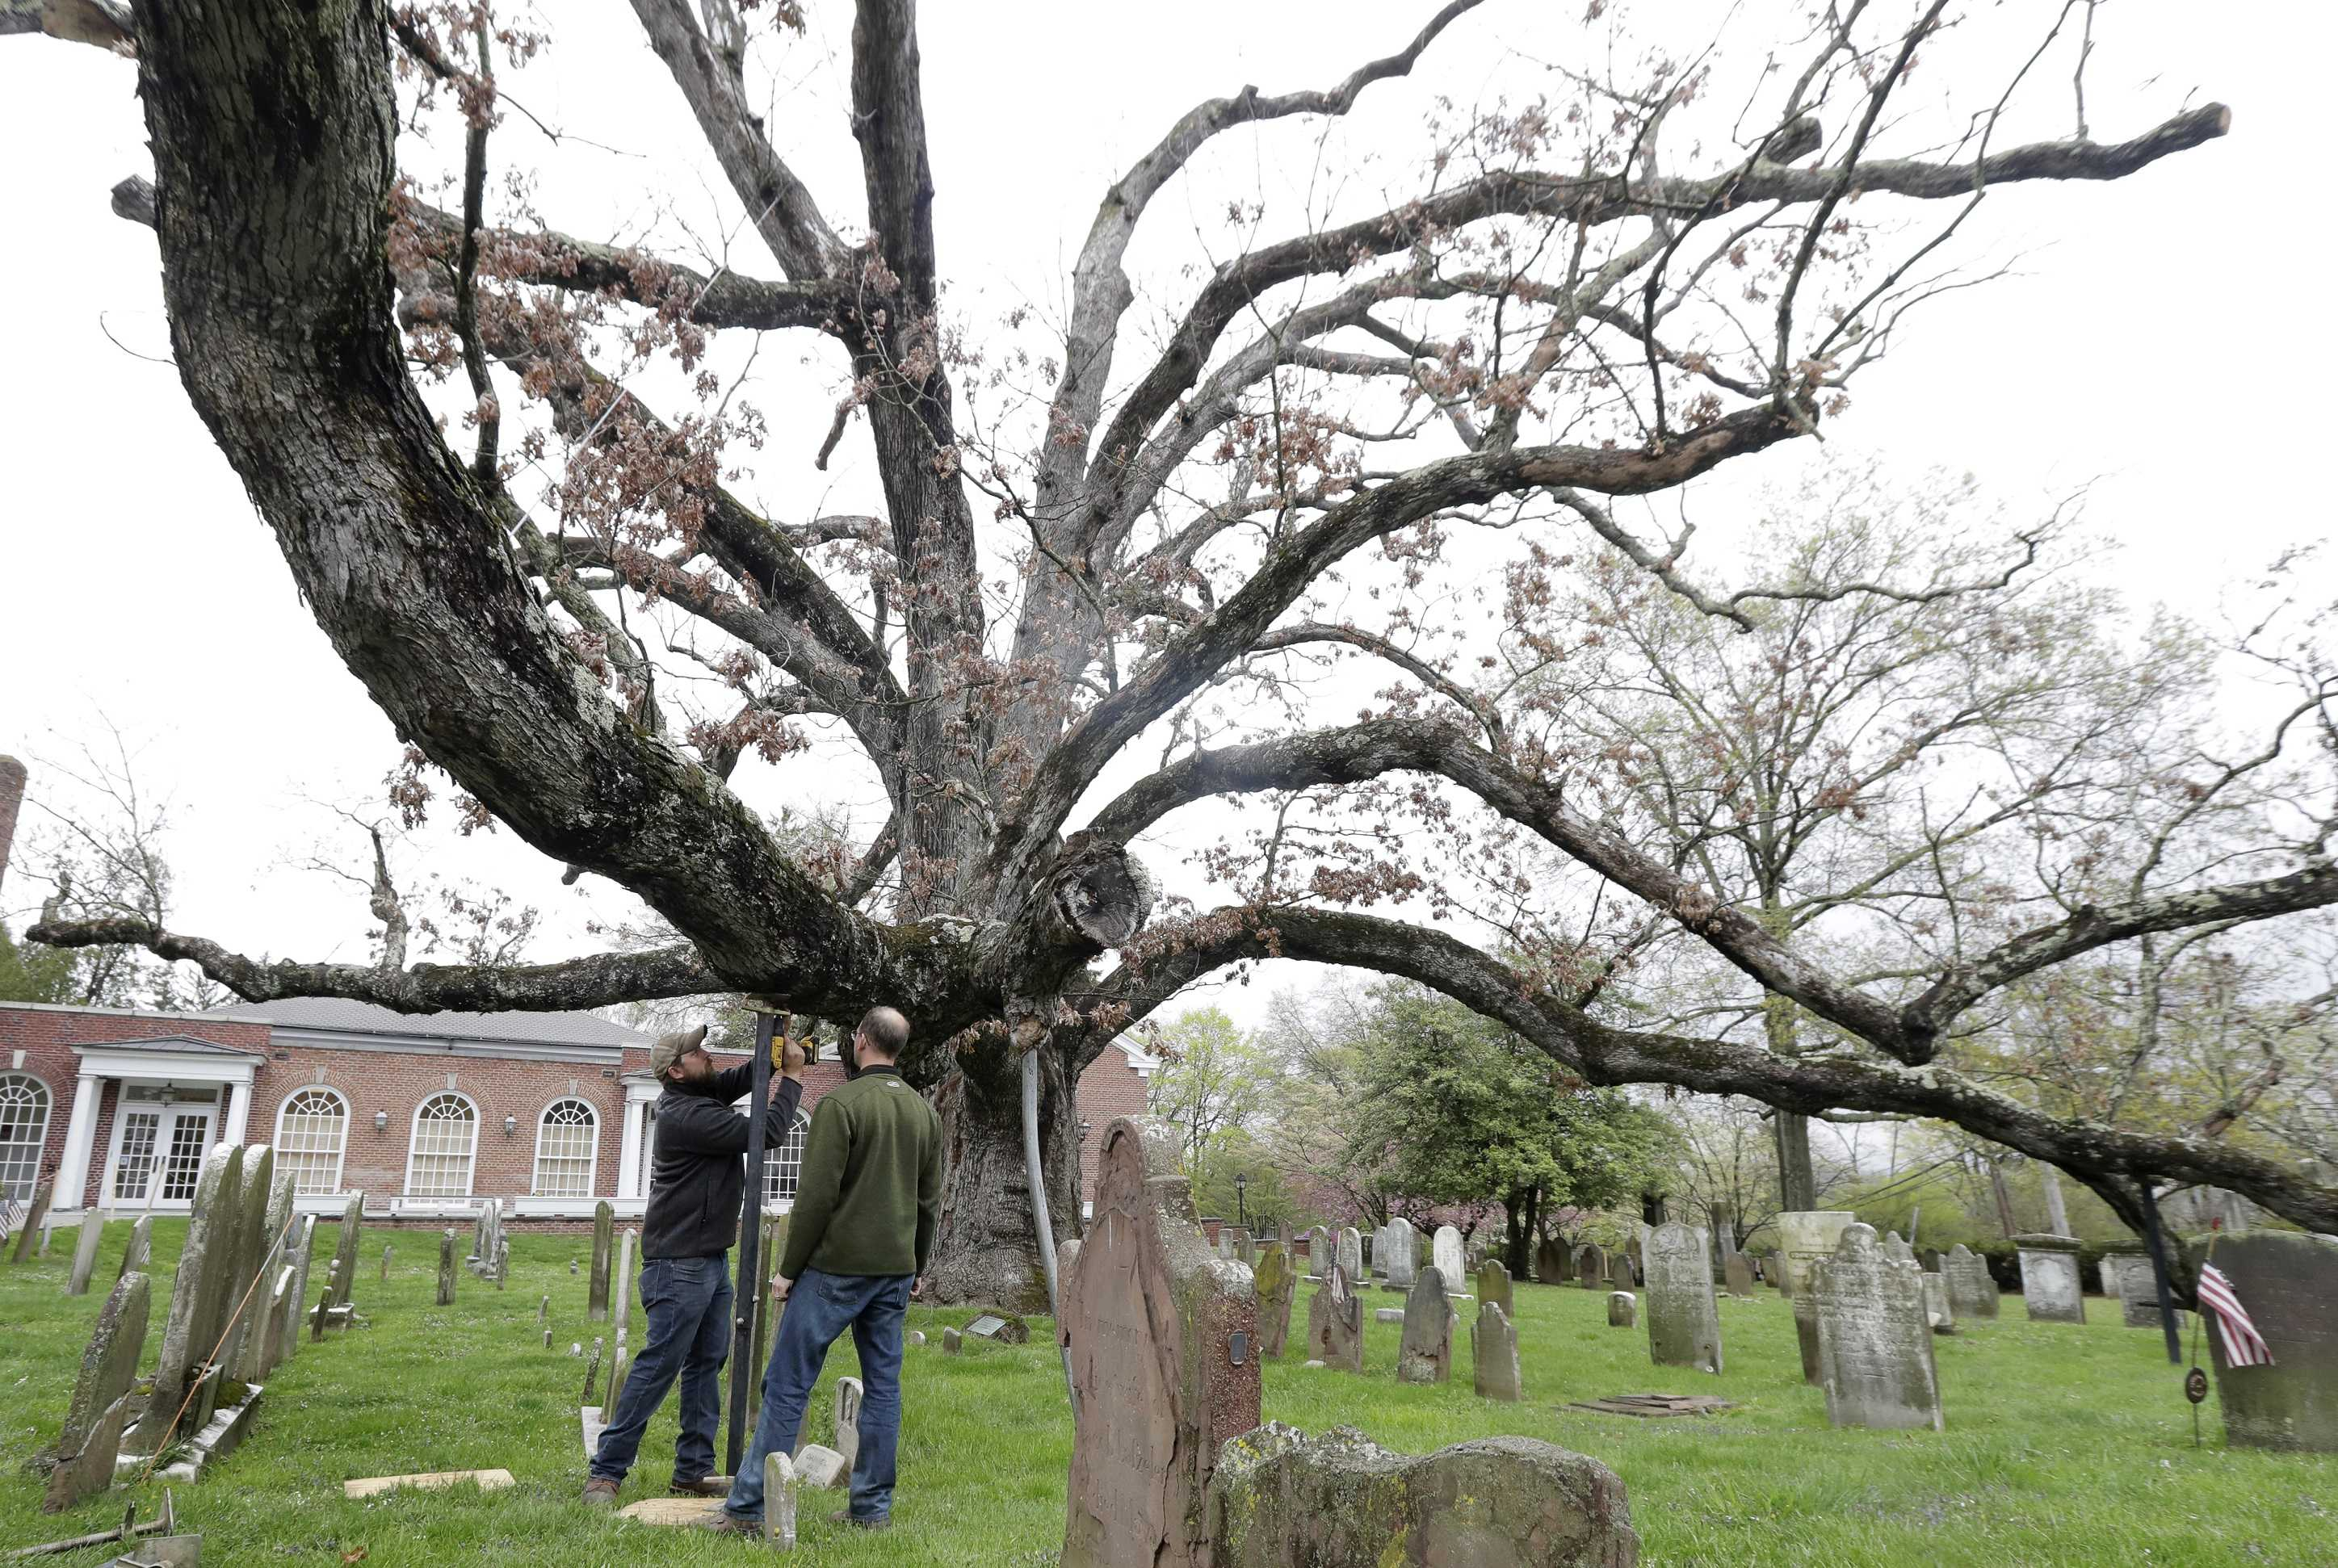 600-year-old tree cut down in New Jersey